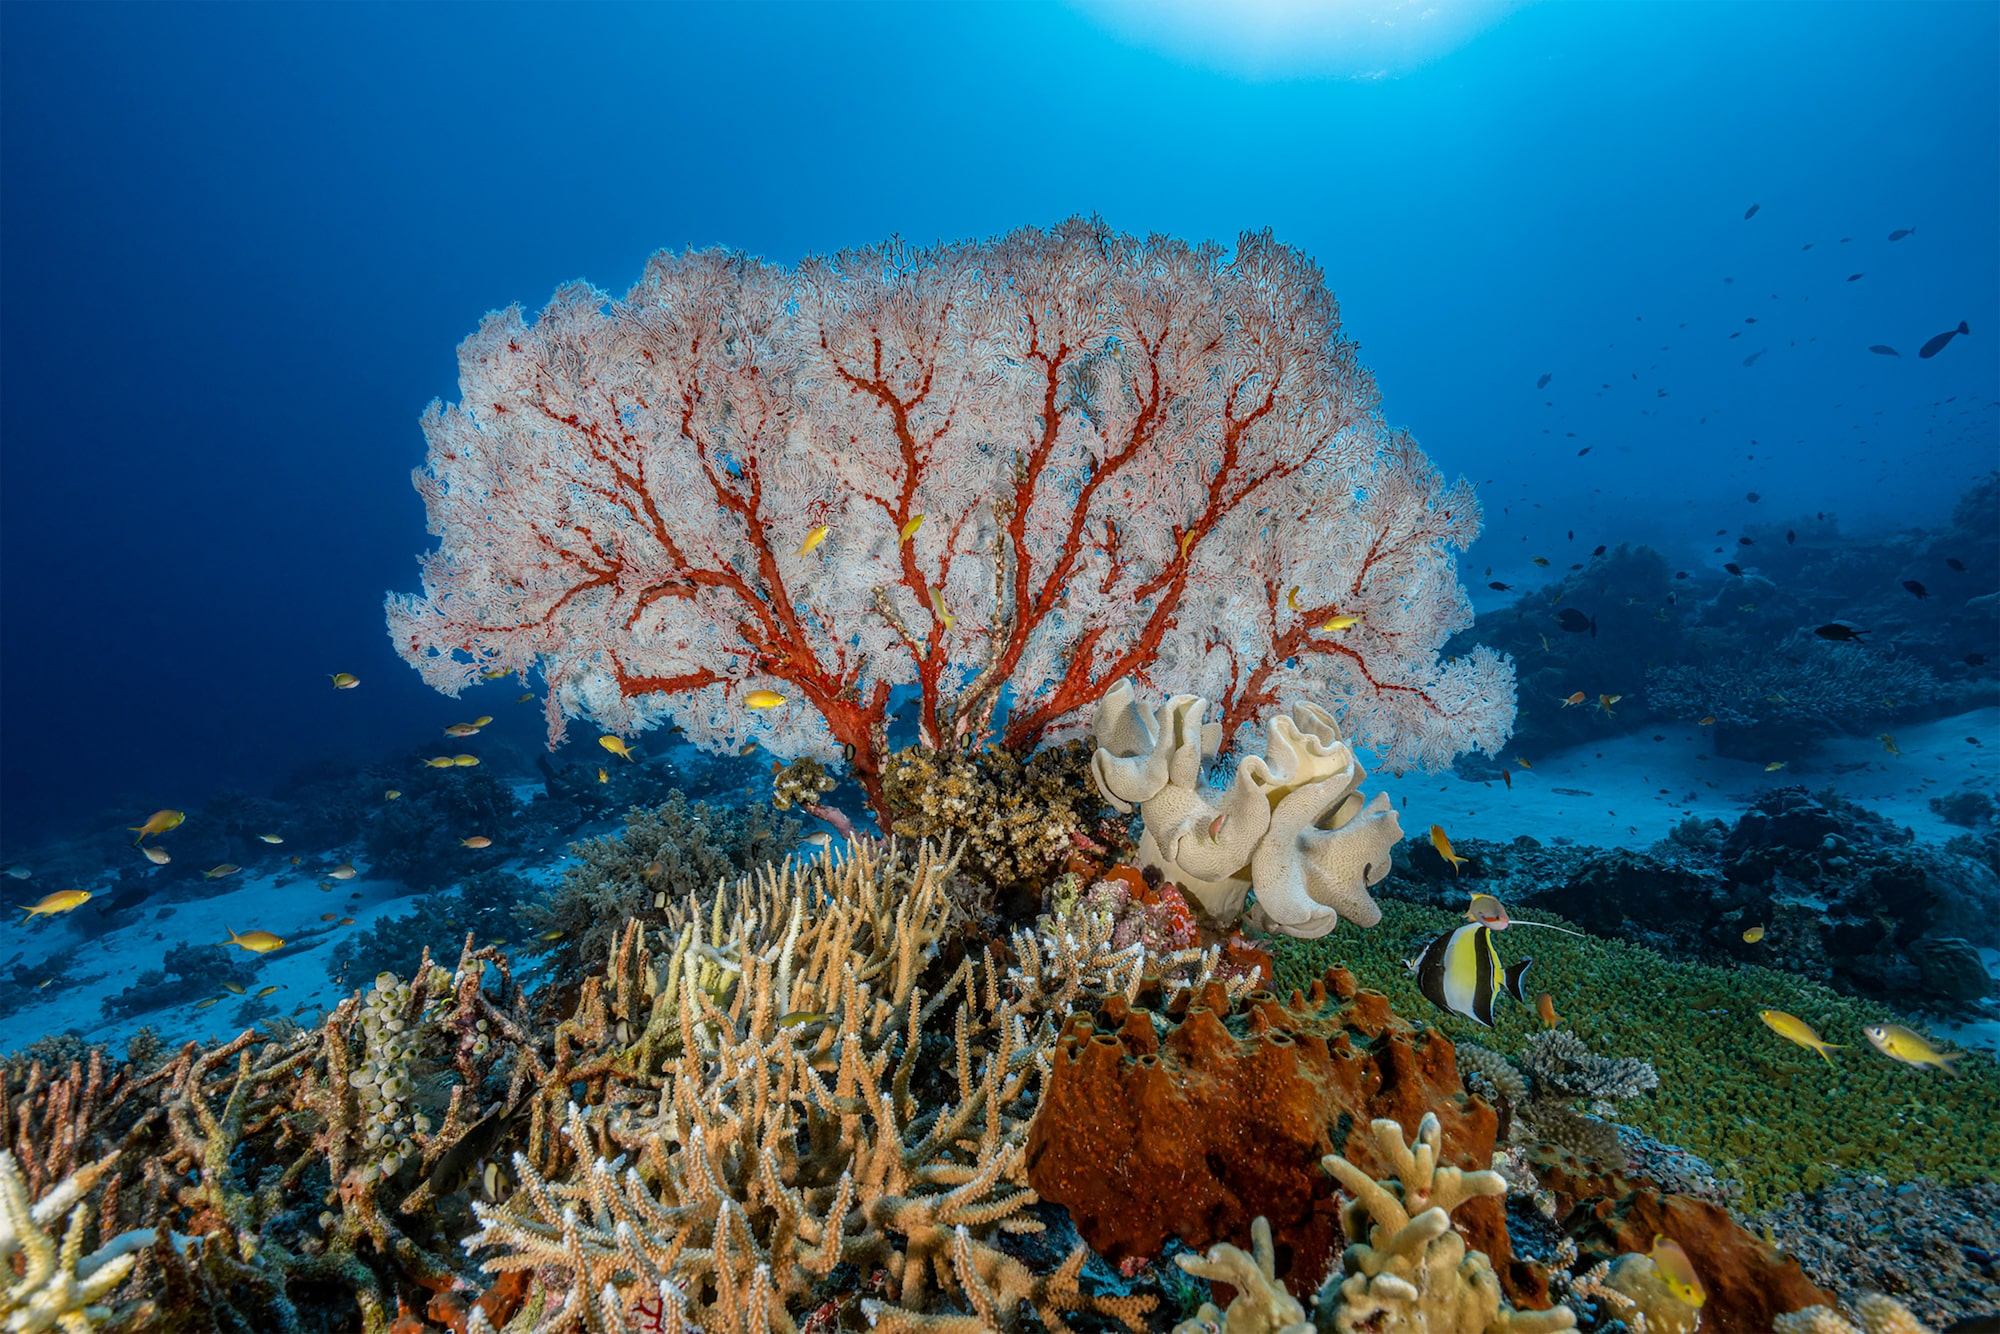 alexis-rosenfeld-sony-A7RM2-a-tree-like-piece-of-coral-illuminated-by-flash-with-a-deep-blue-sea-behind.jpg